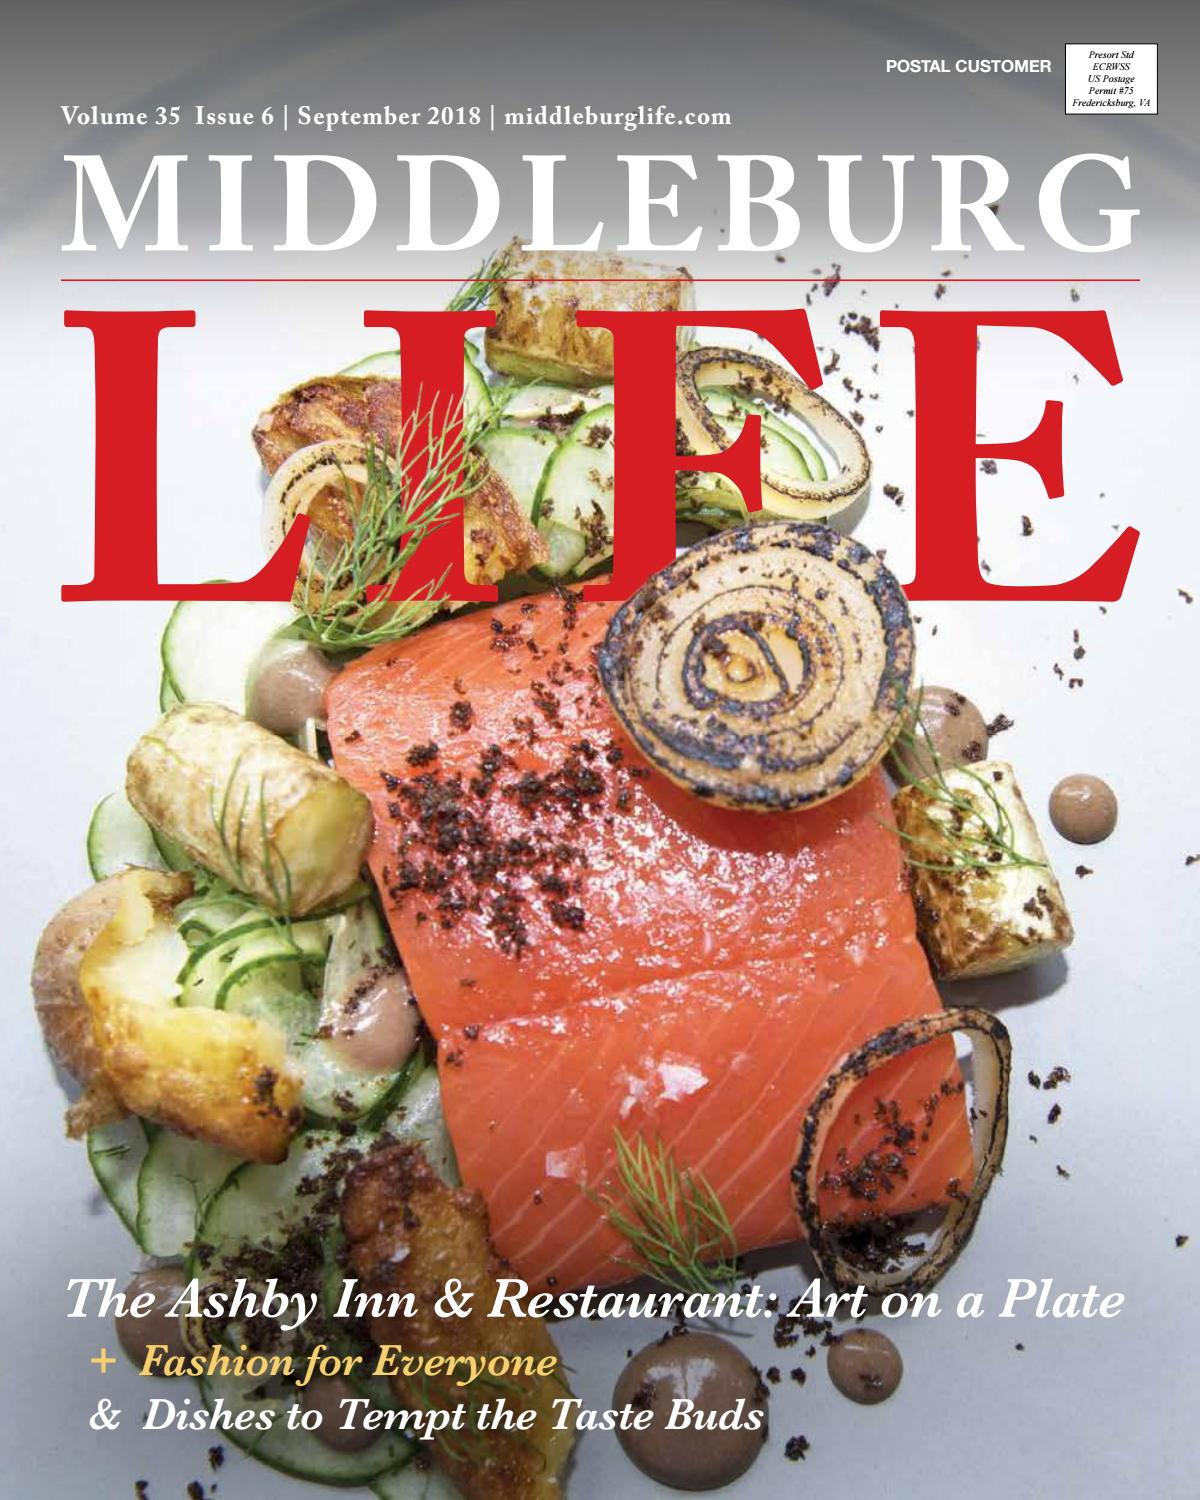 Middleburg Life September Issue By Issuu Good A C System Diagram Callie Broaddus39s Blog